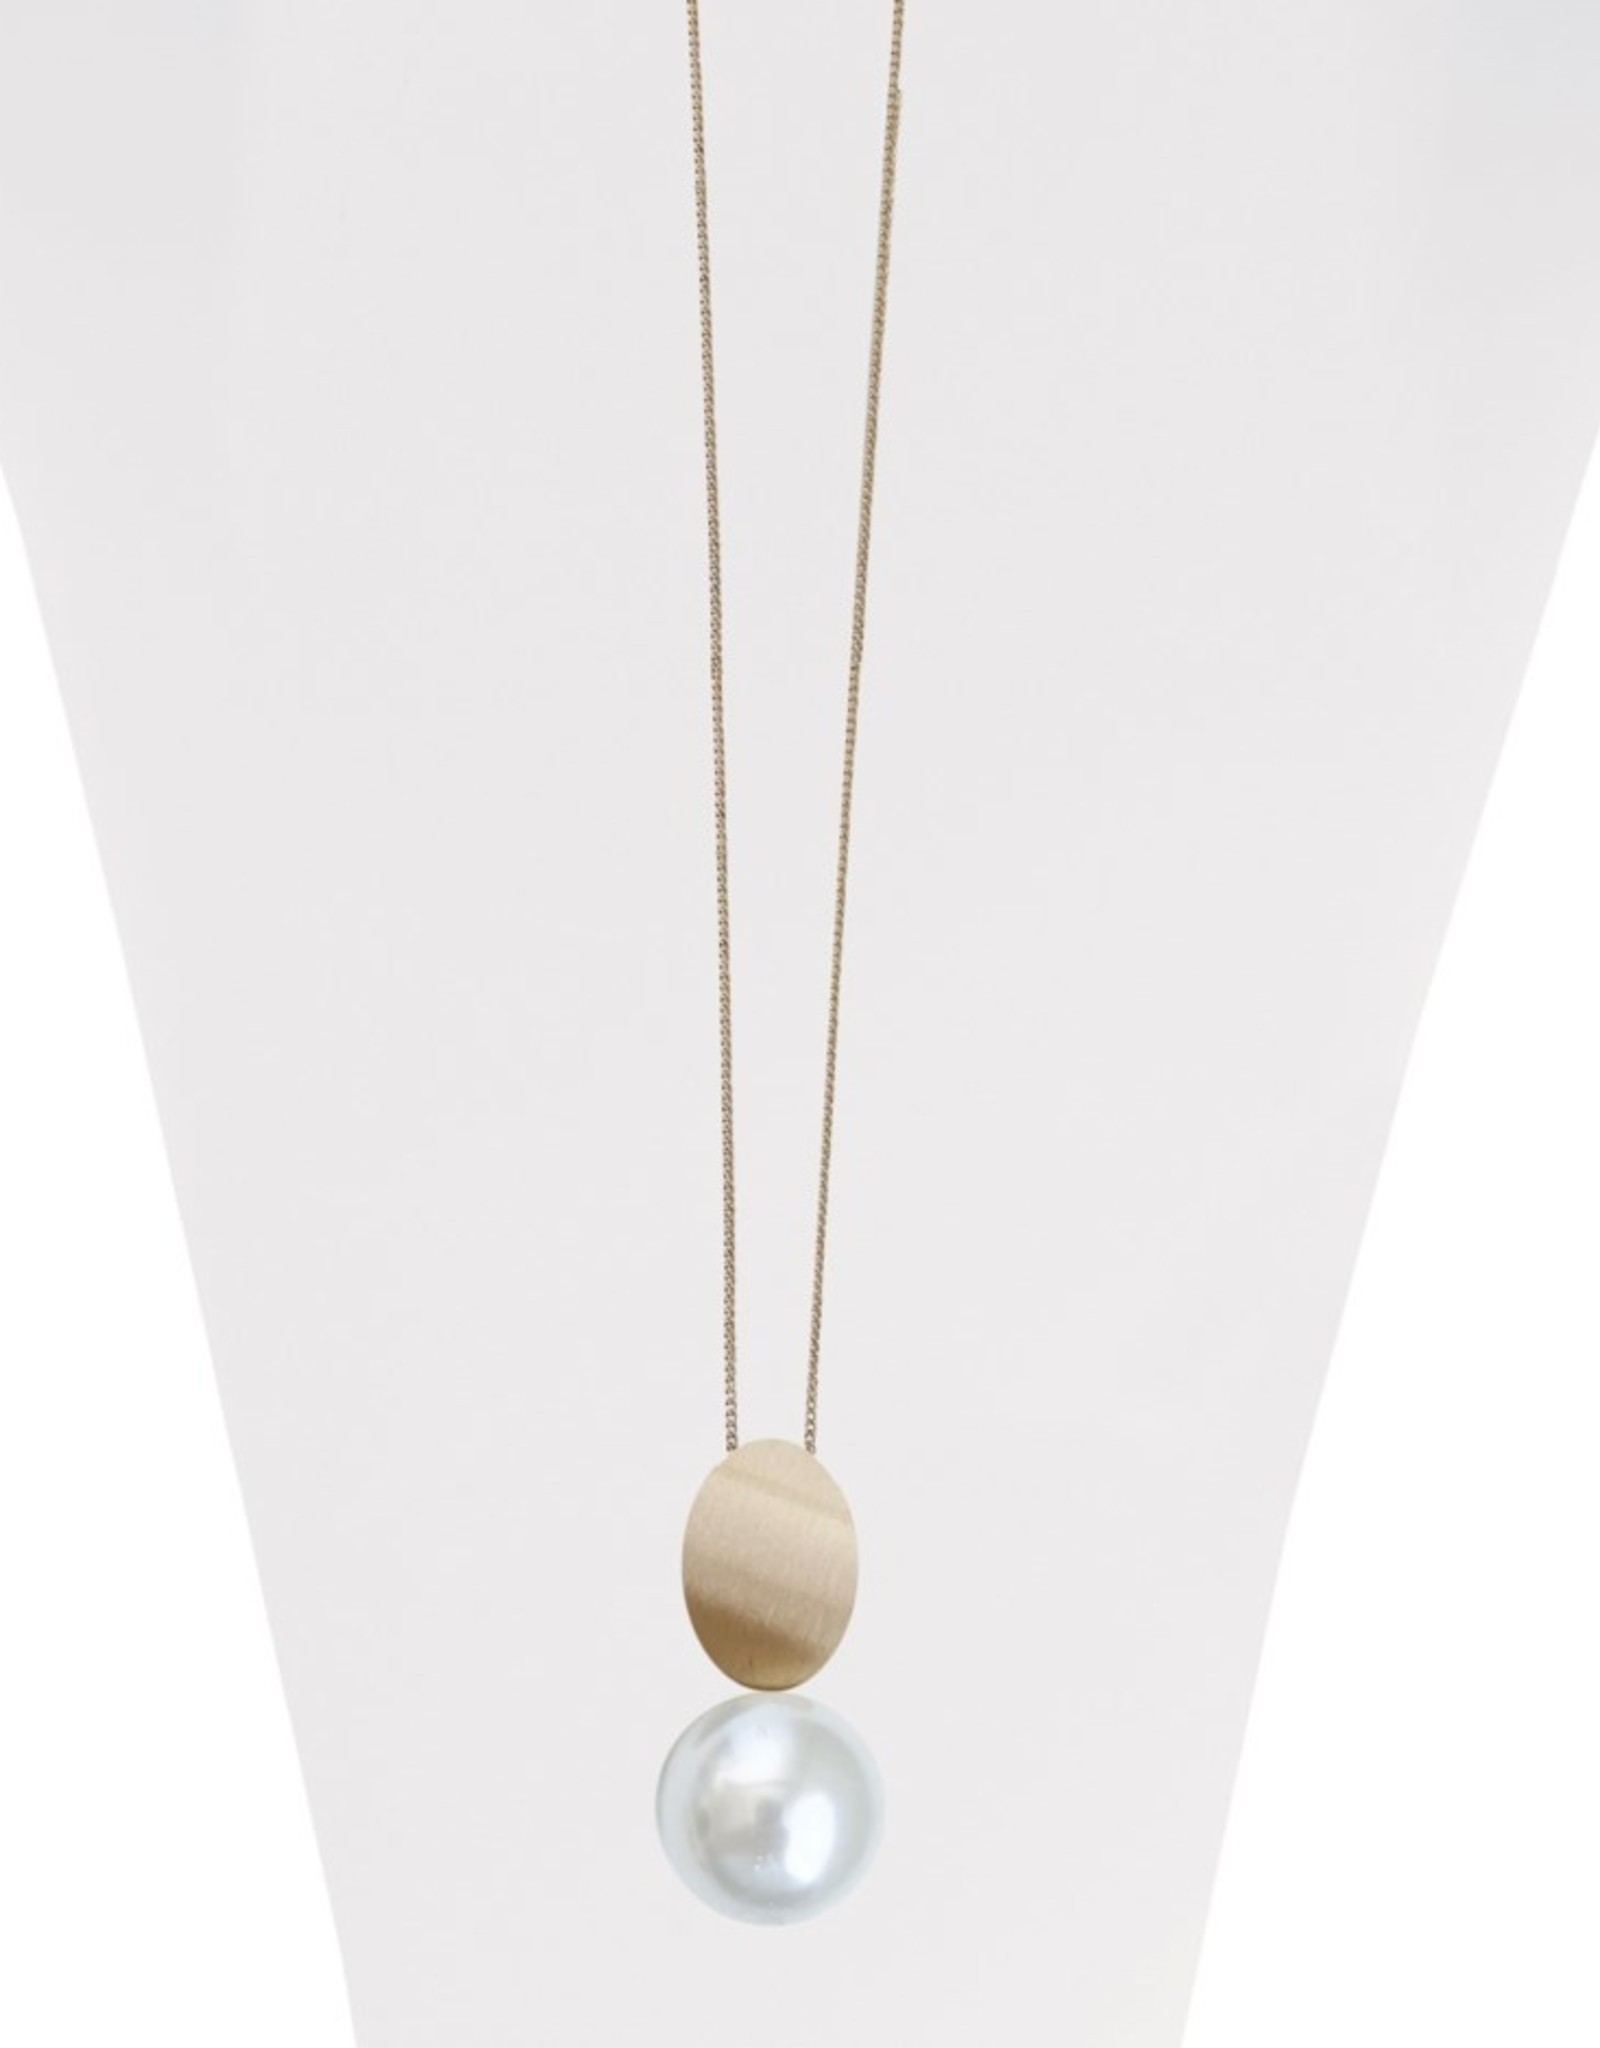 Long Adjustable Necklace with Brushed Metal Pendant & Pearl-gold